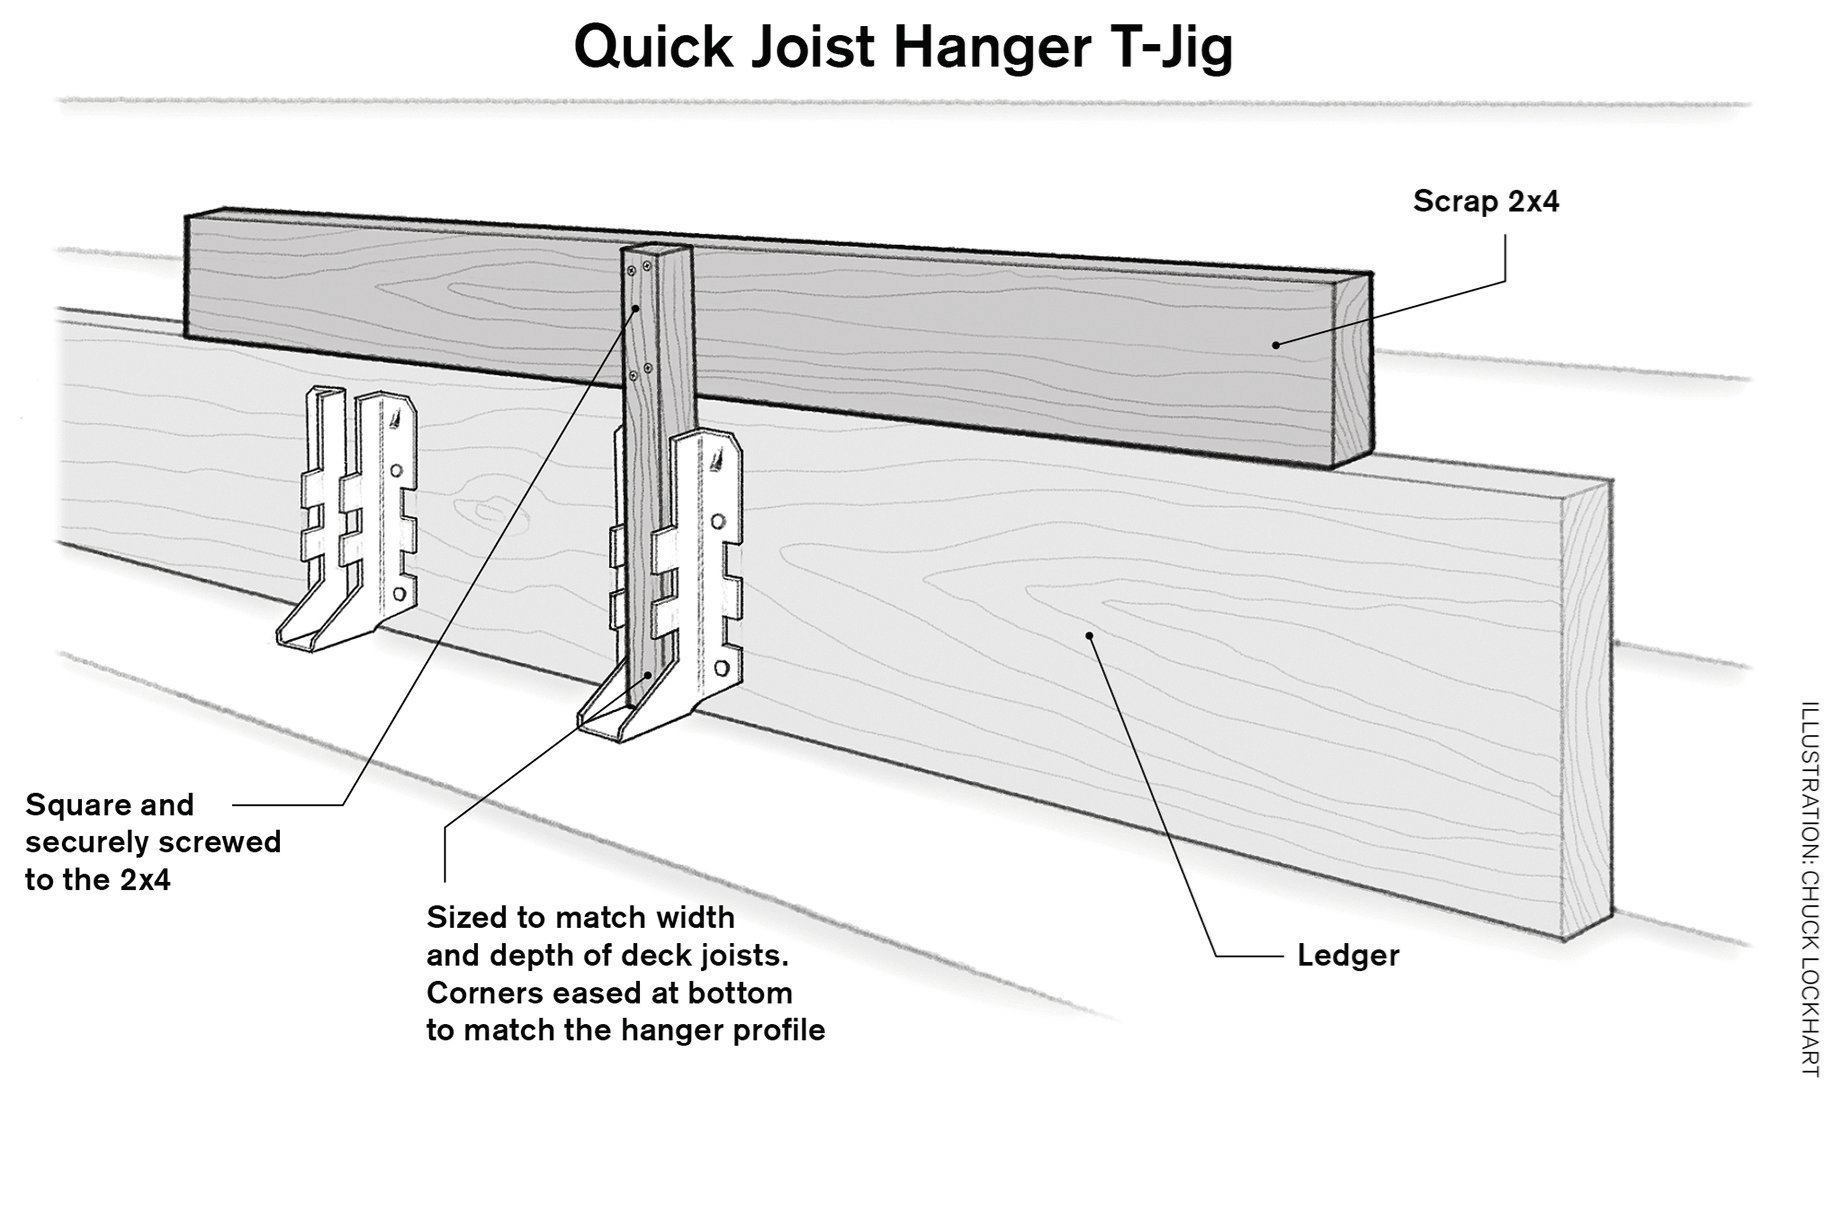 Fast Joist Hanger Installation Tools Of The Trade